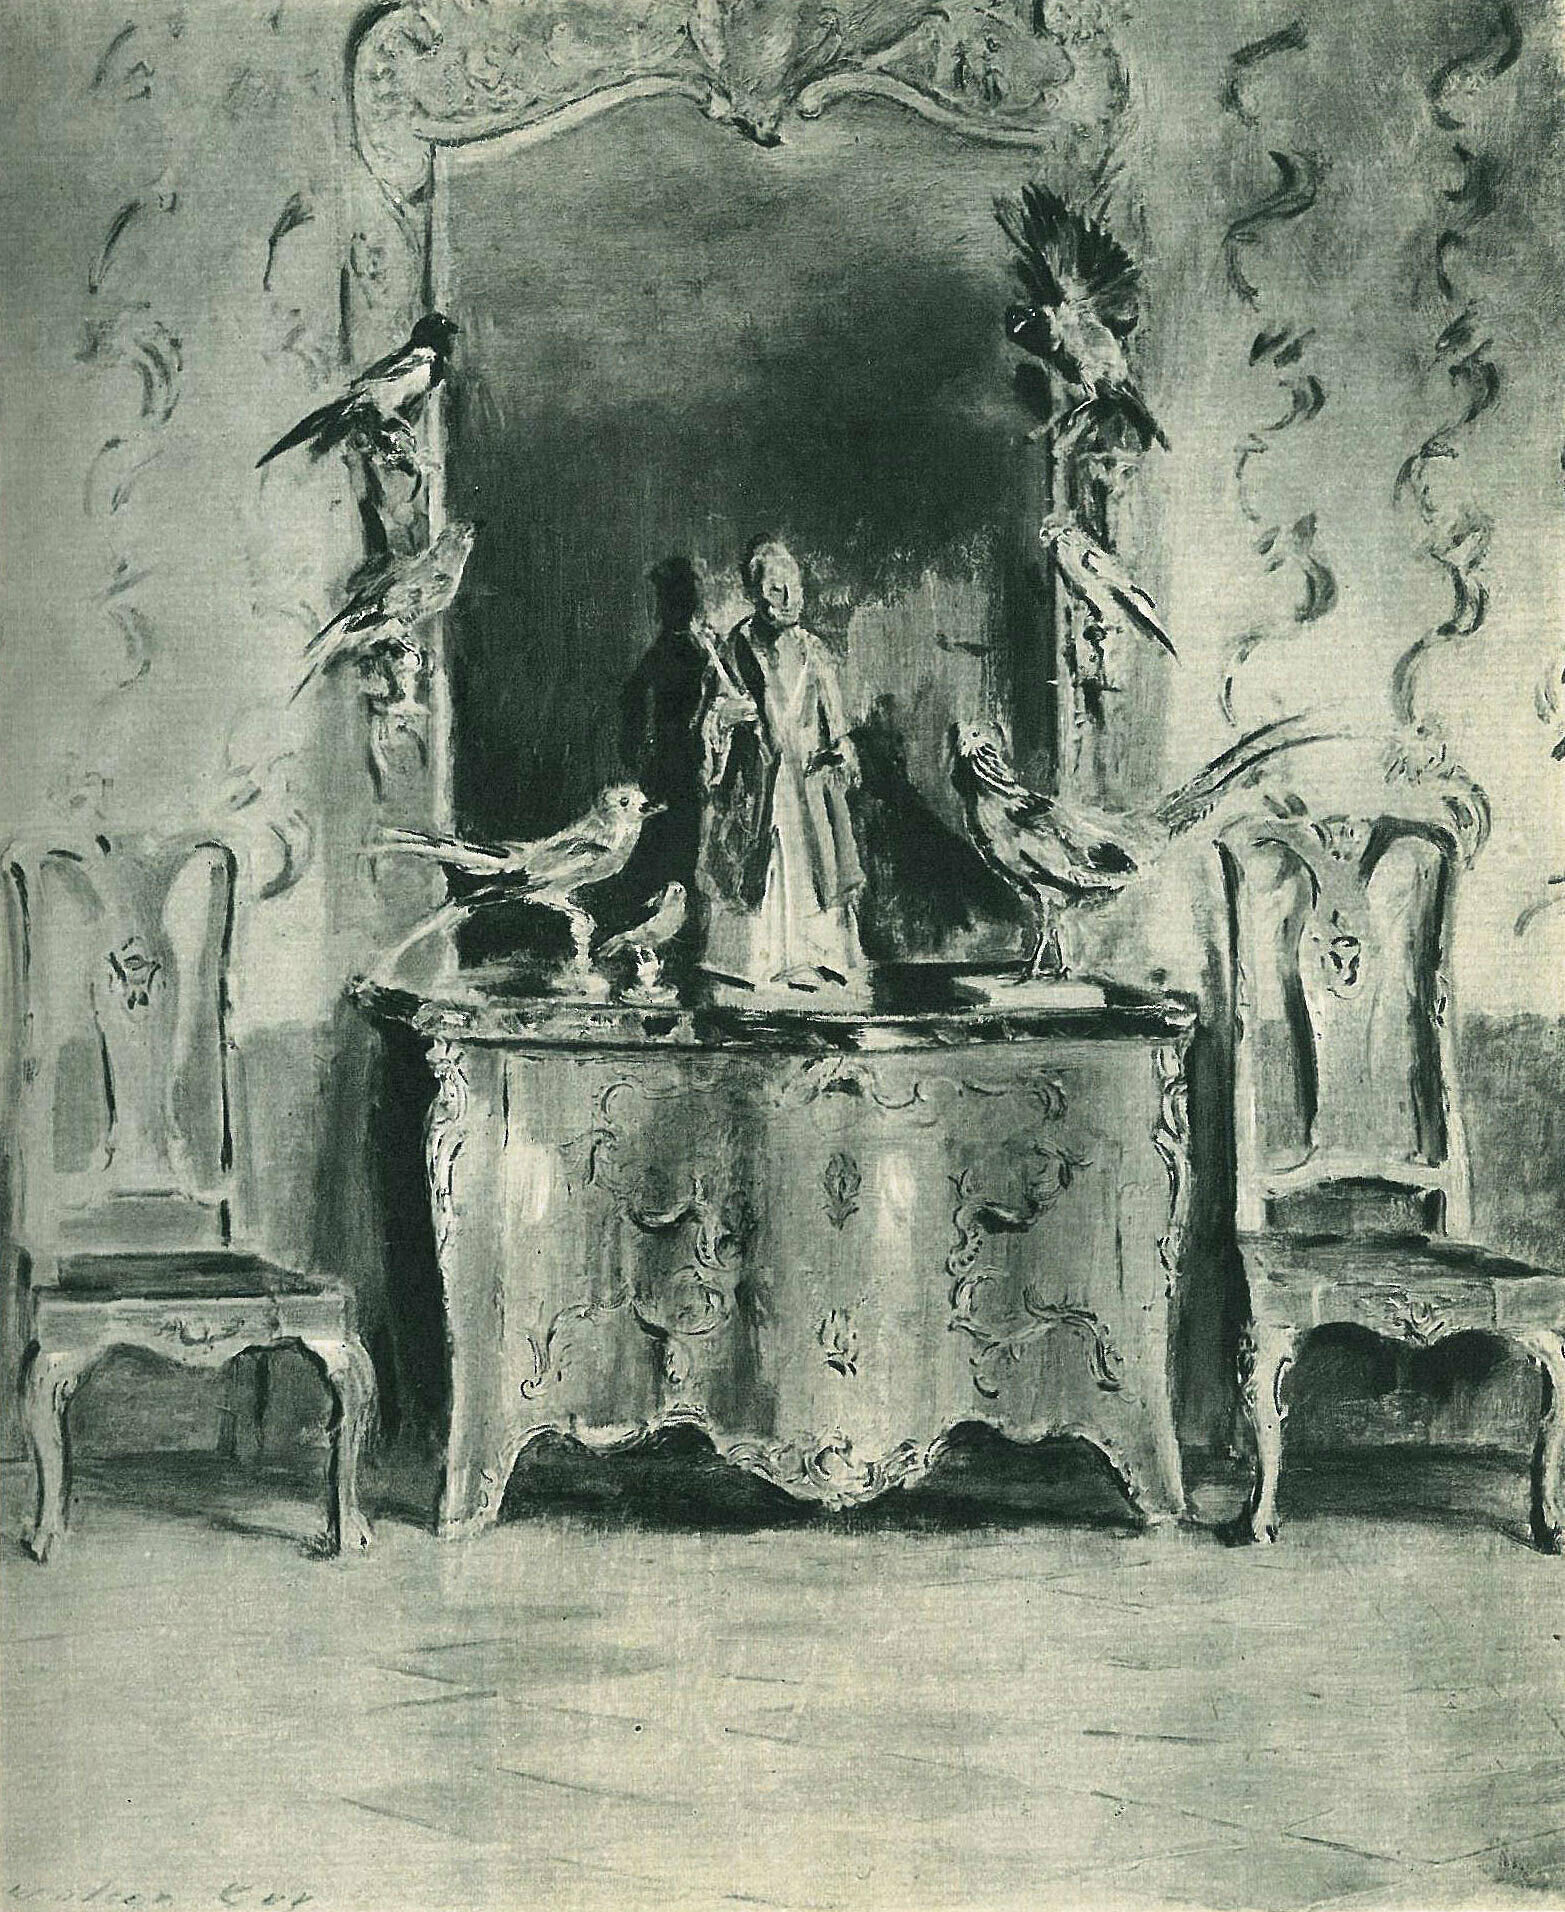 A muted painting of an ornate interior